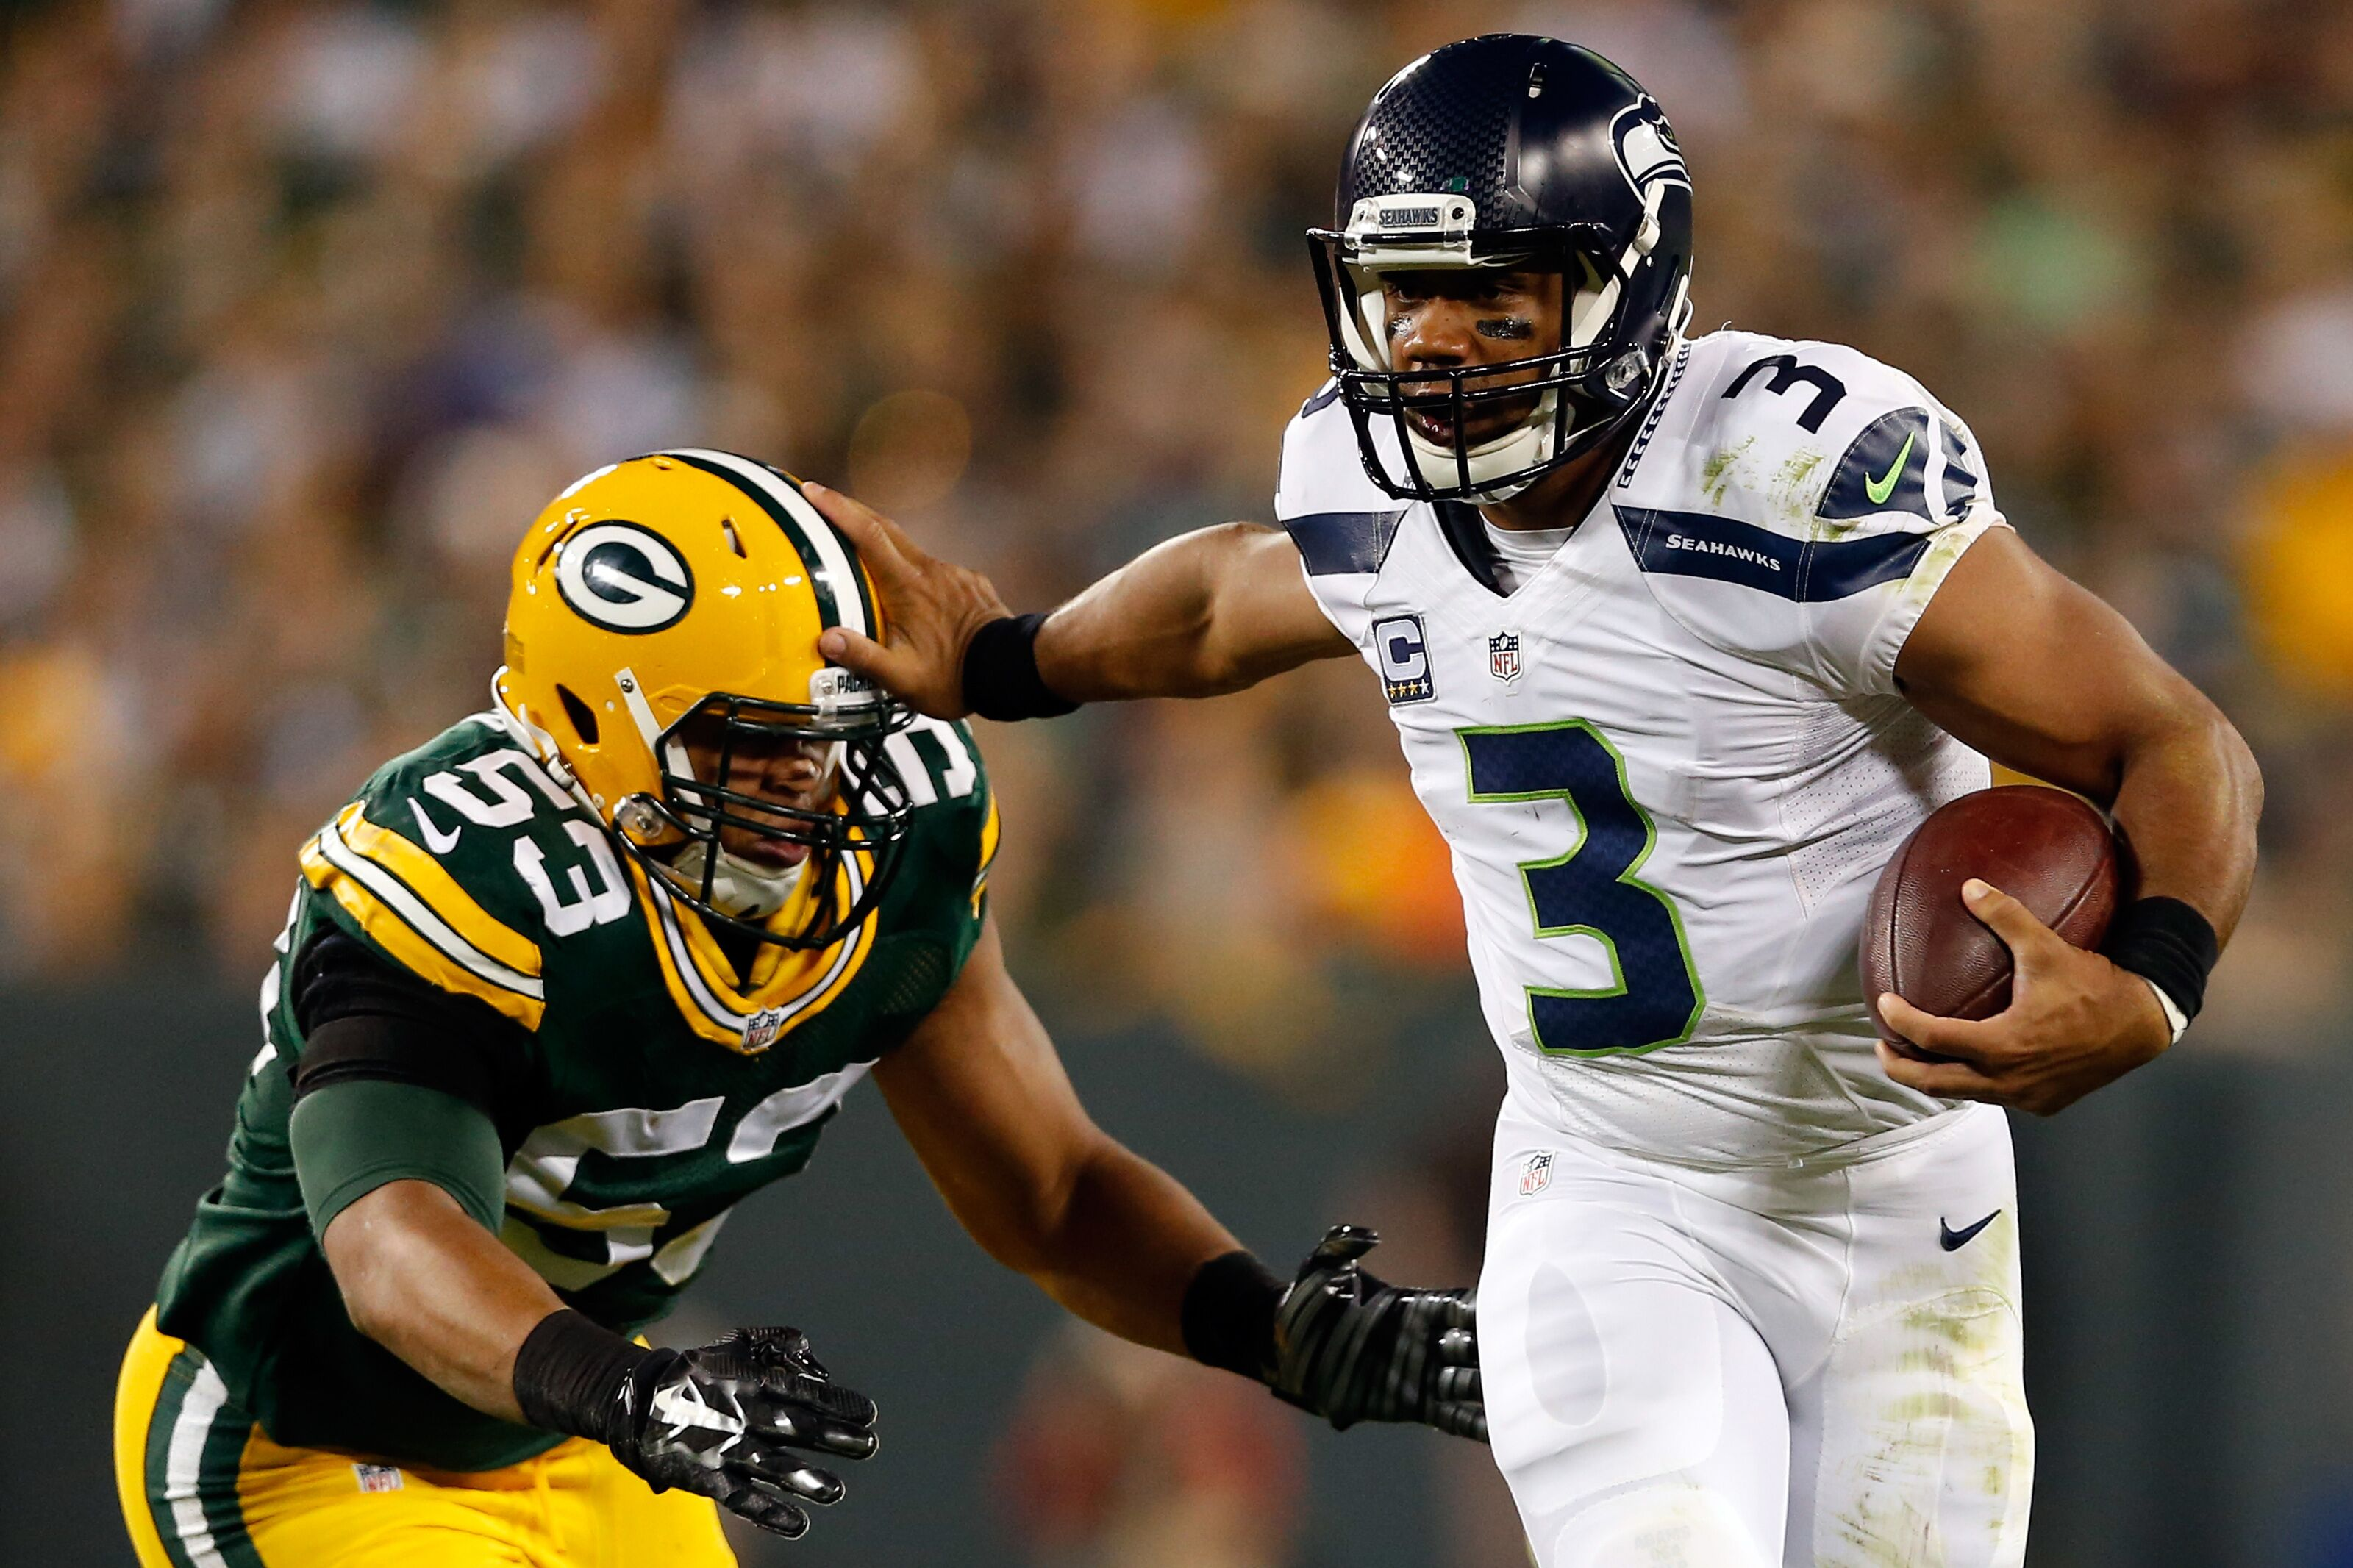 NFL Playoffs odds: Do the sharps believe in Seahawks and Texans?